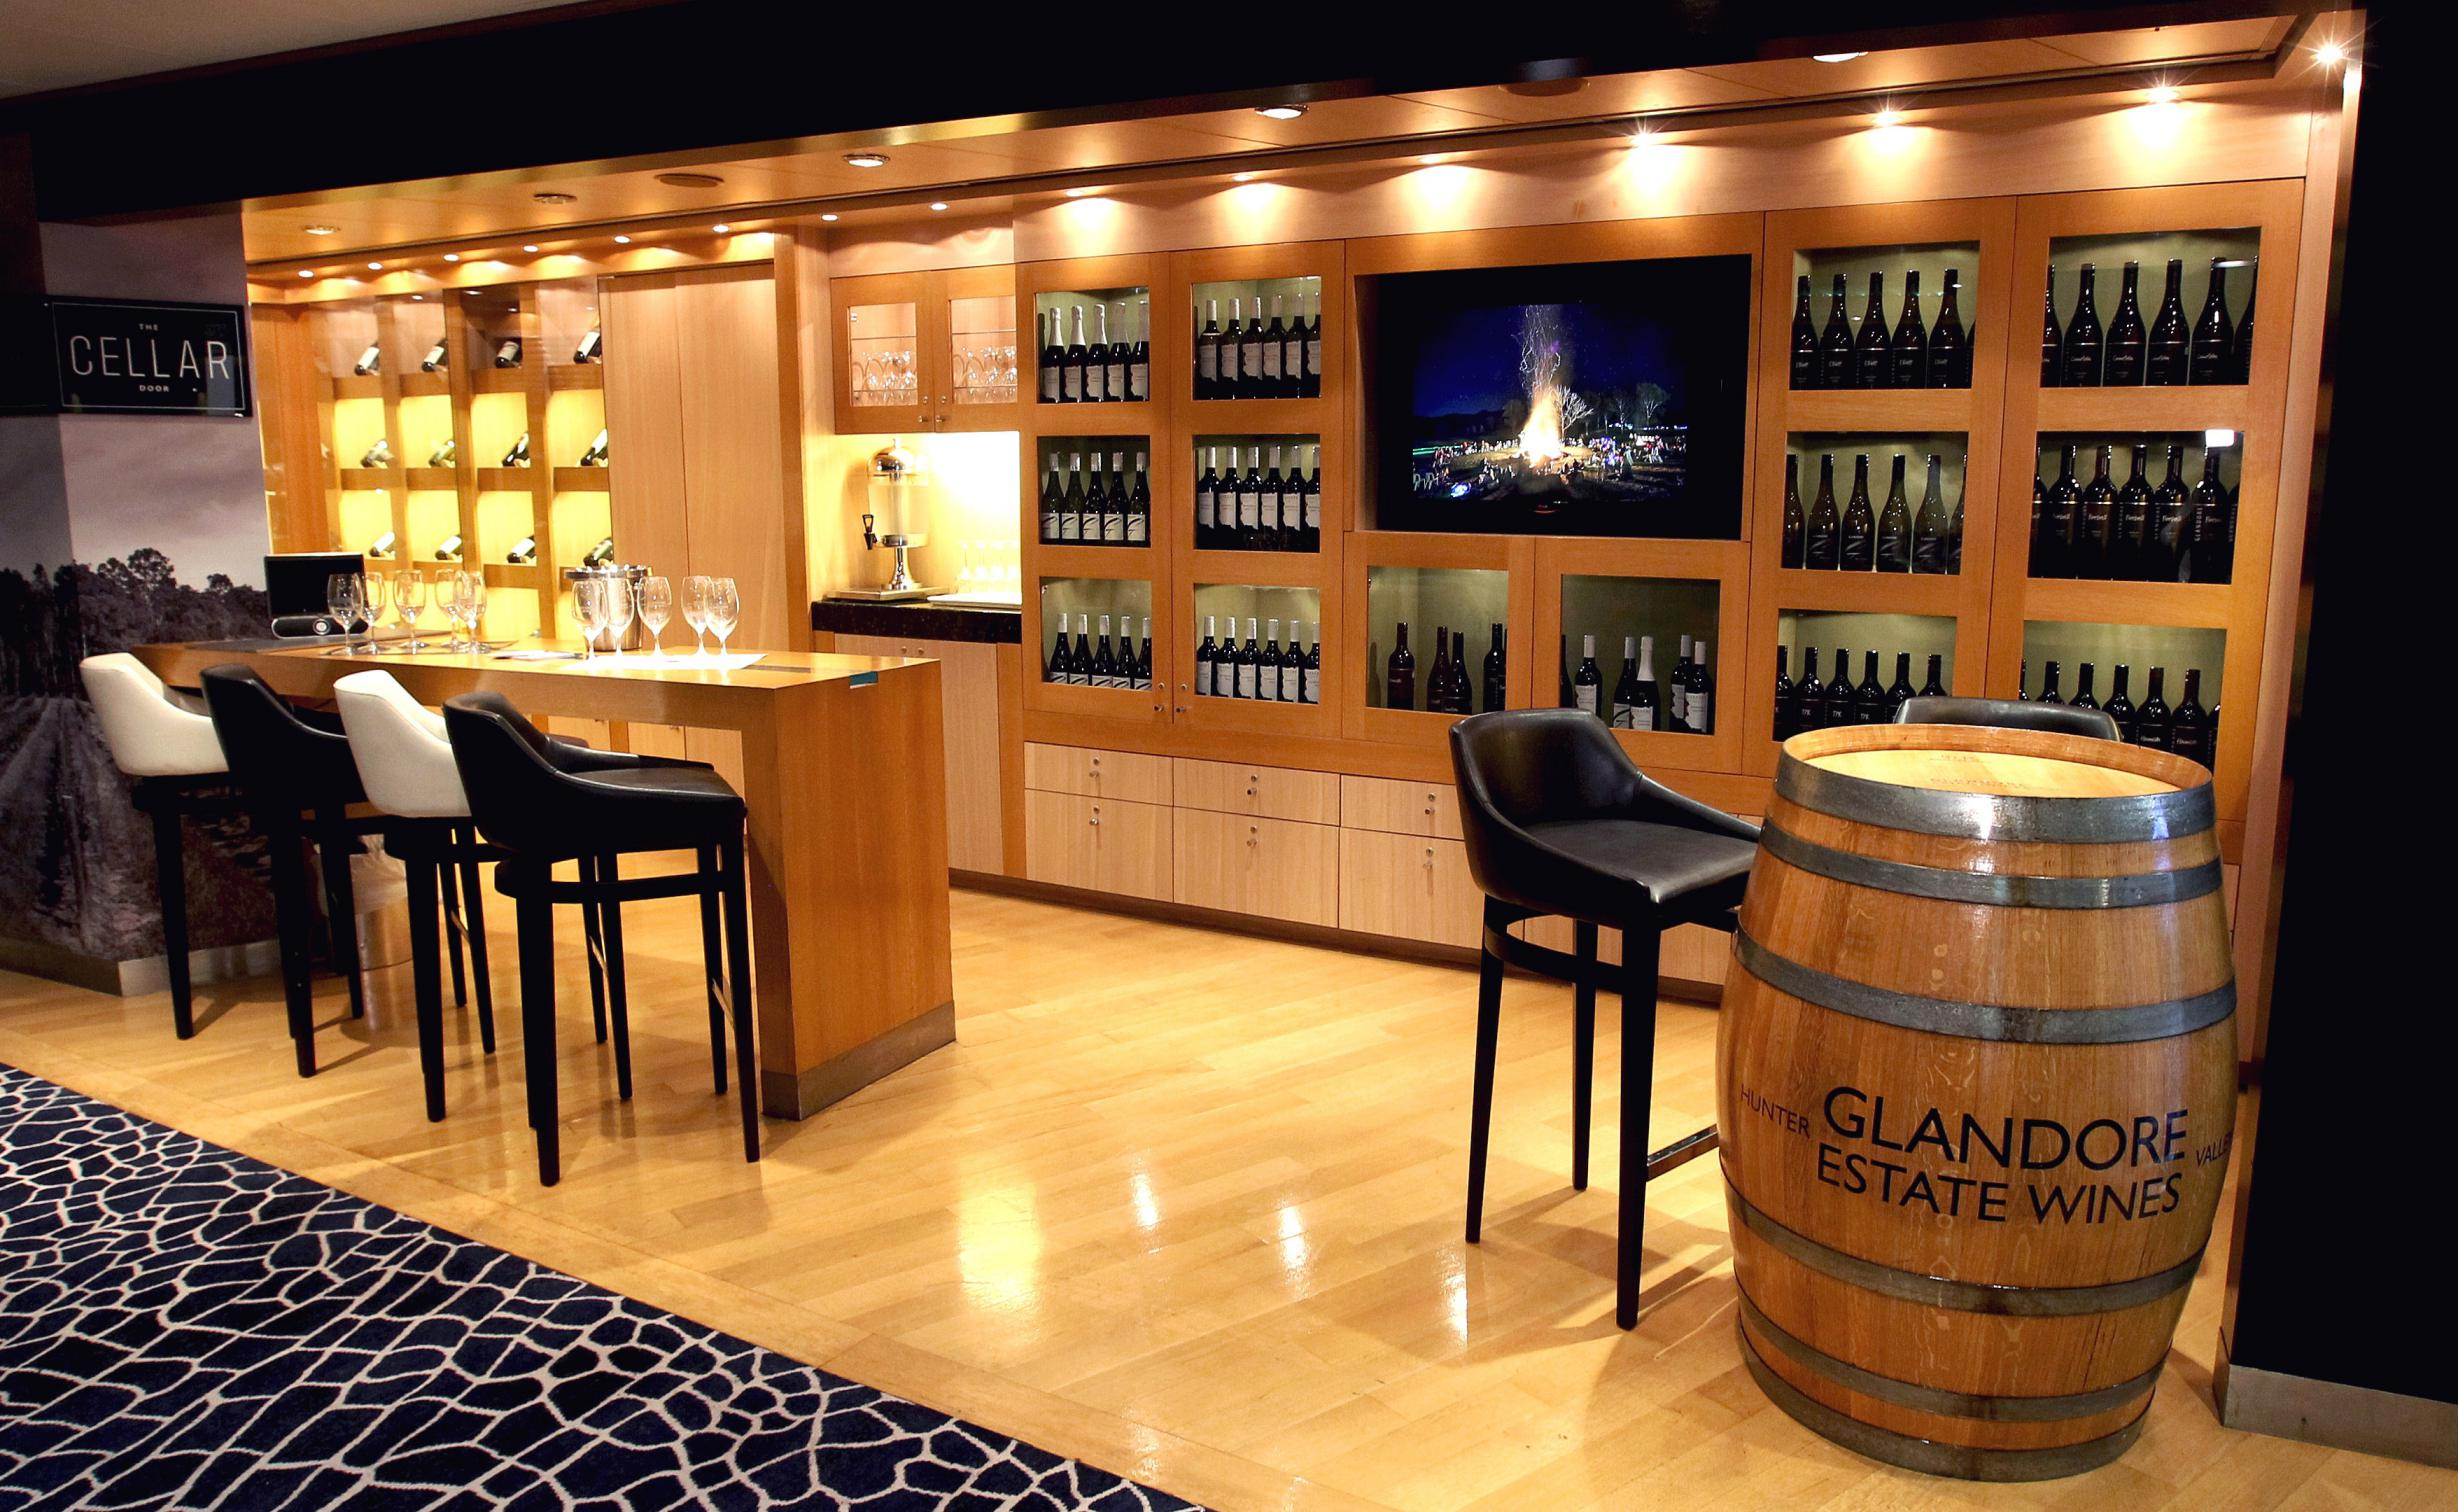 Pu0026O Cruises partner with Glandore Estate Wines to open a new on board Cellar Door u2013 AU Abroad & Pu0026O Cruises partner with Glandore Estate Wines to open a new on ...